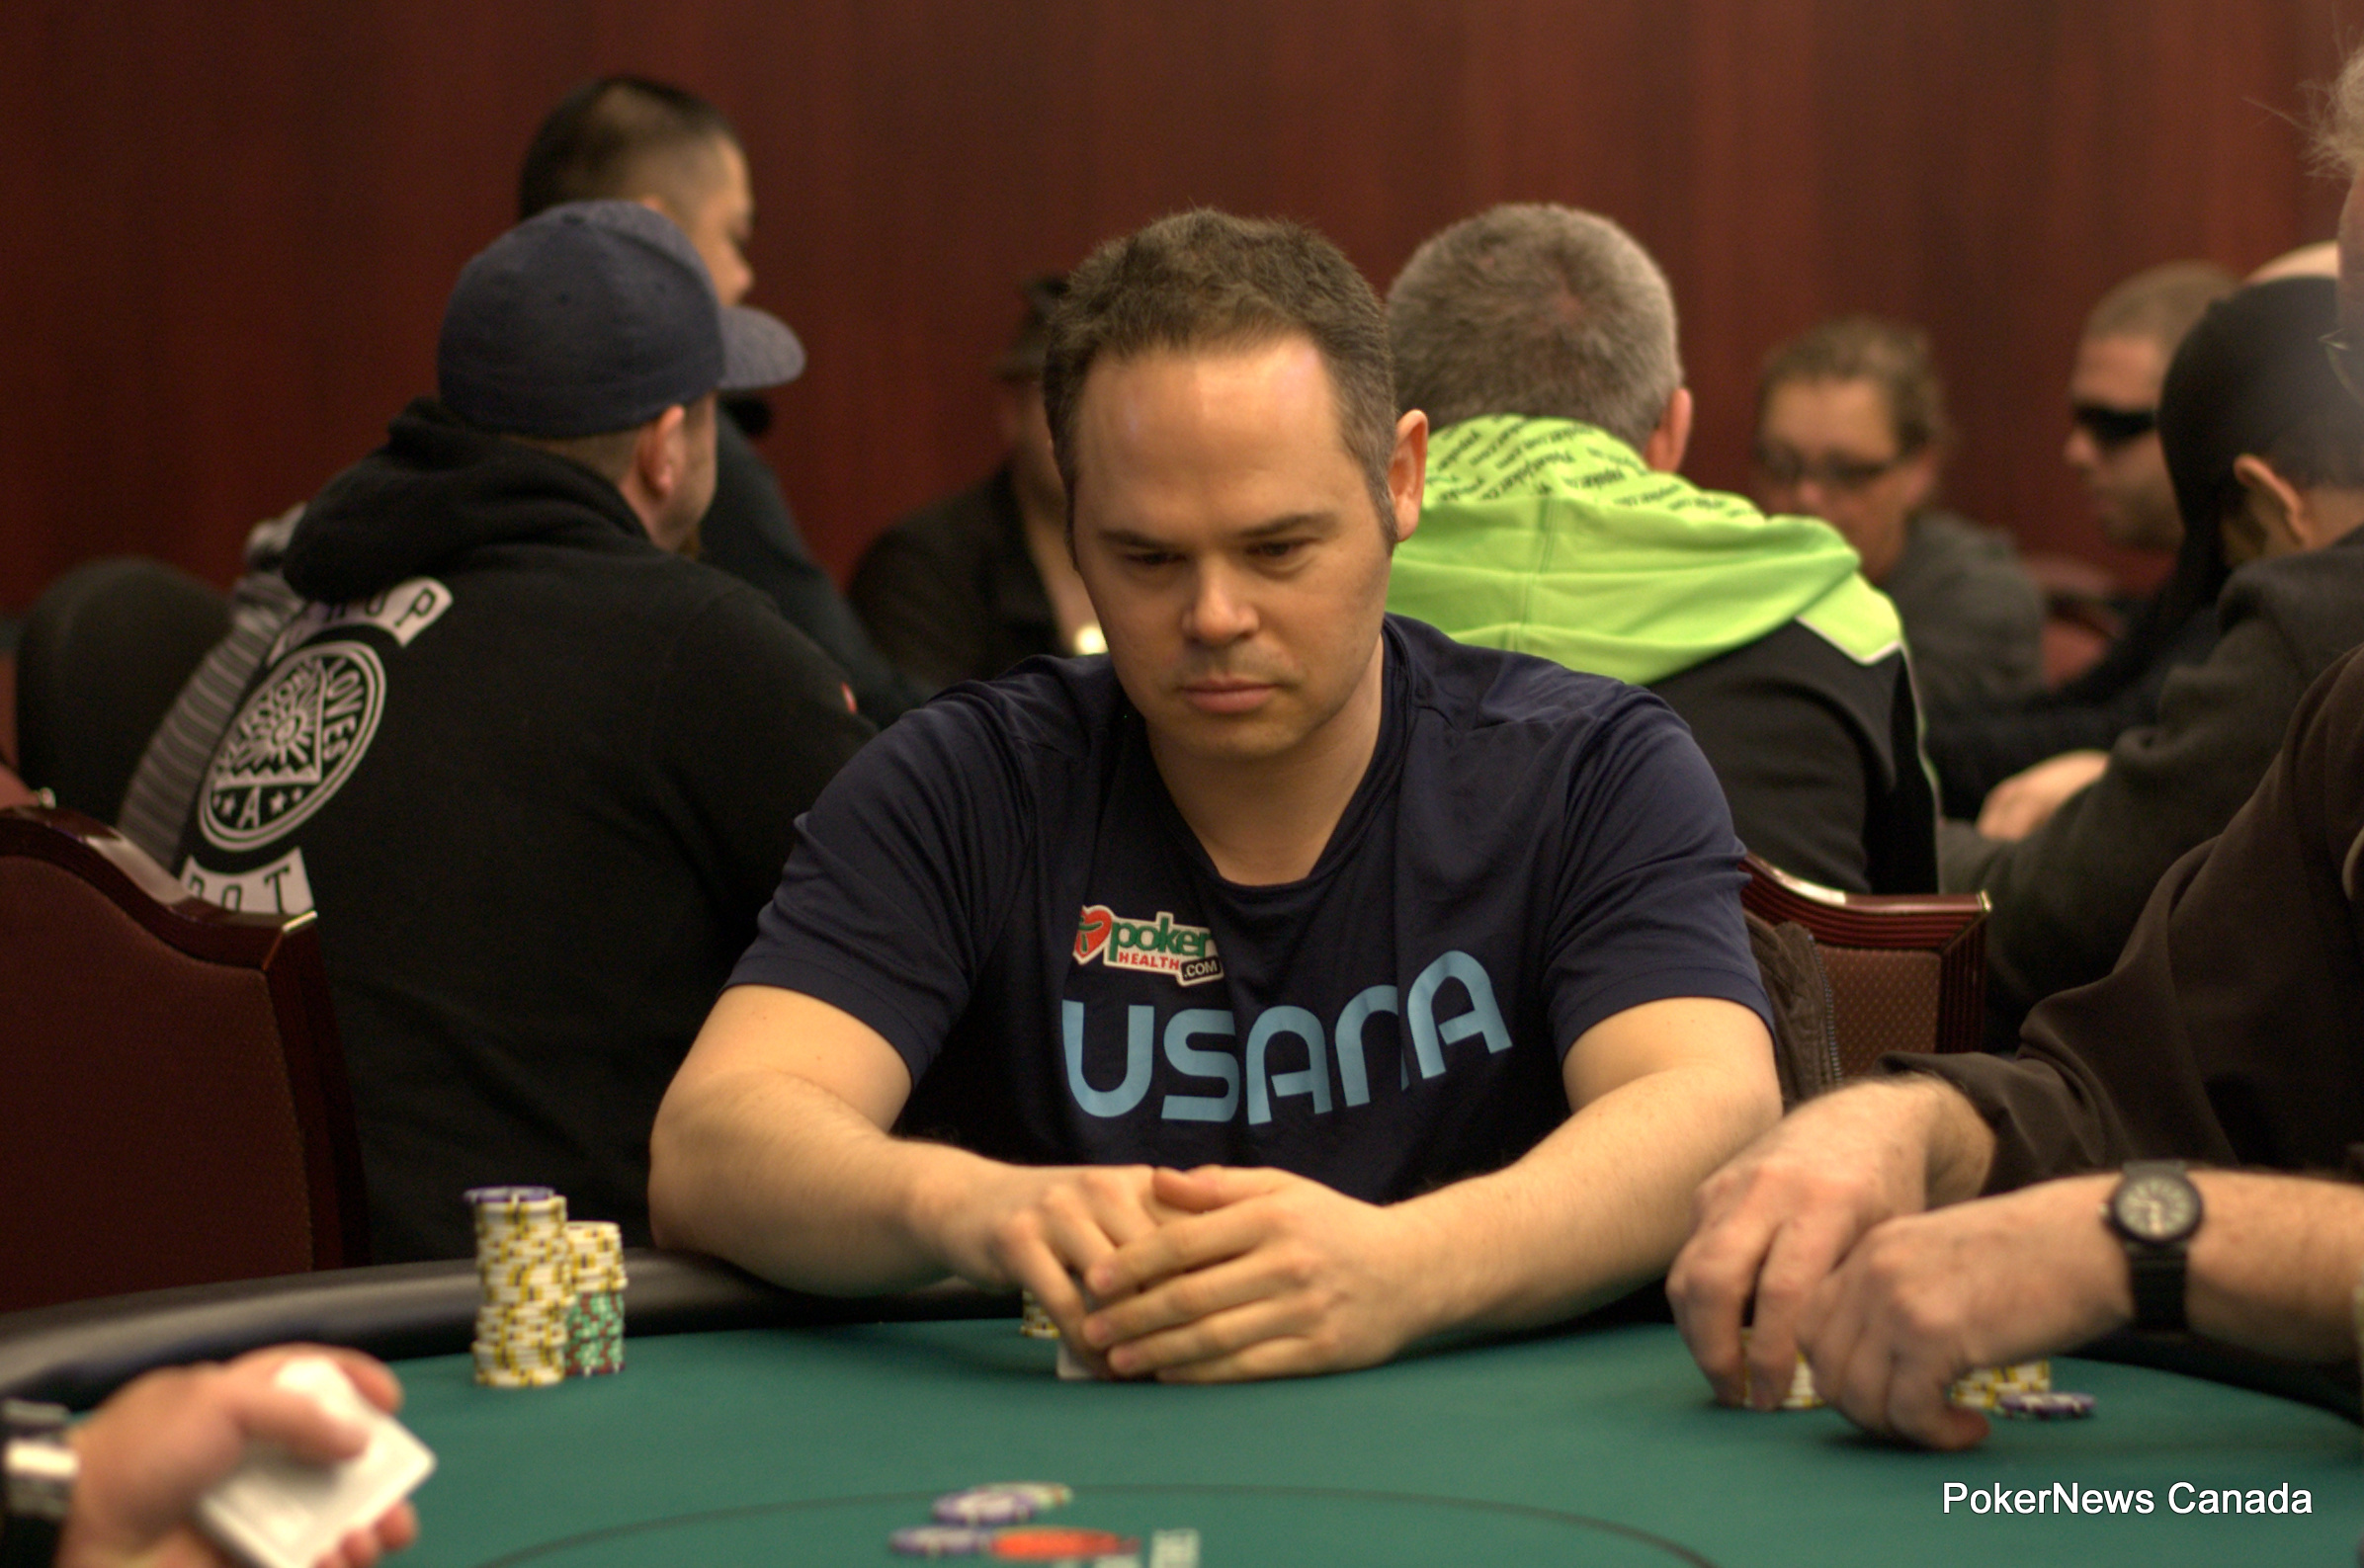 Mark Golub finished runner-up in the PlayNow Poker Championship Main Event.